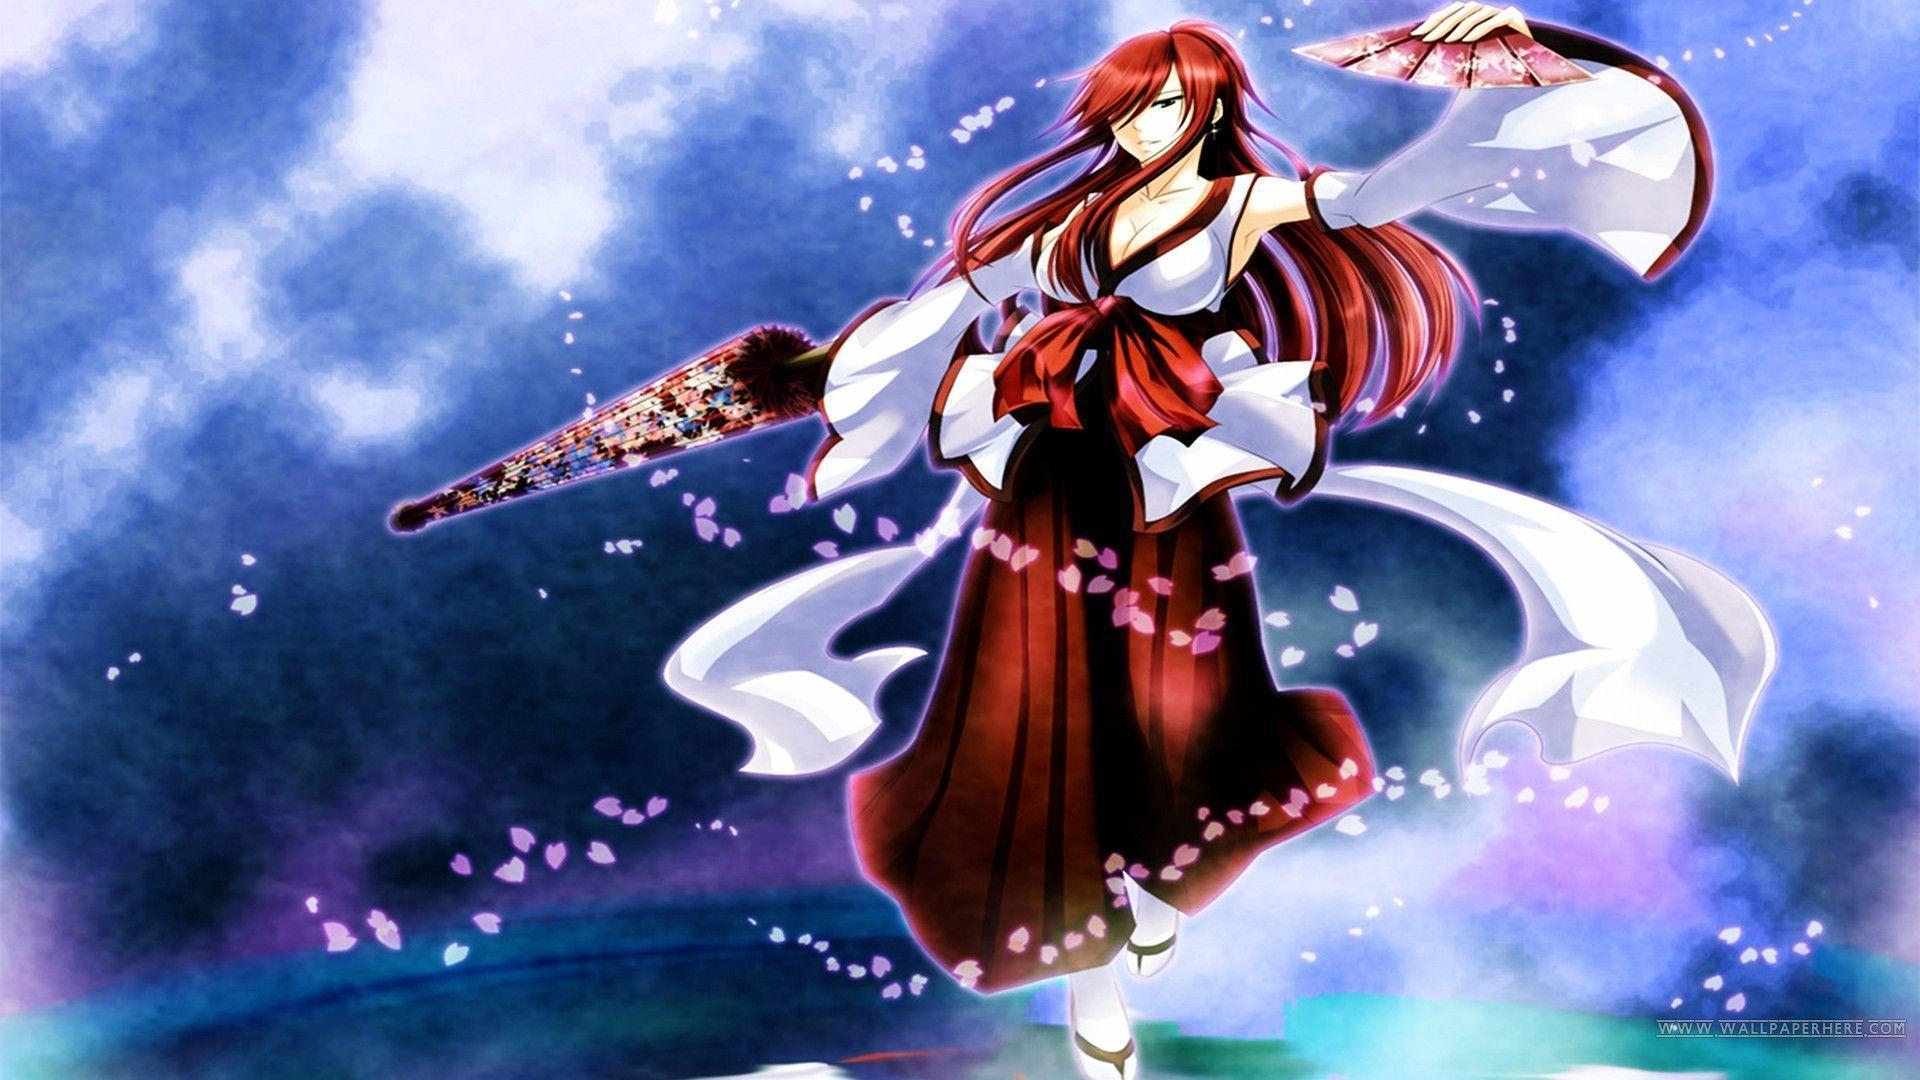 Fairy Tail Erza Wallpapers 1920x1080